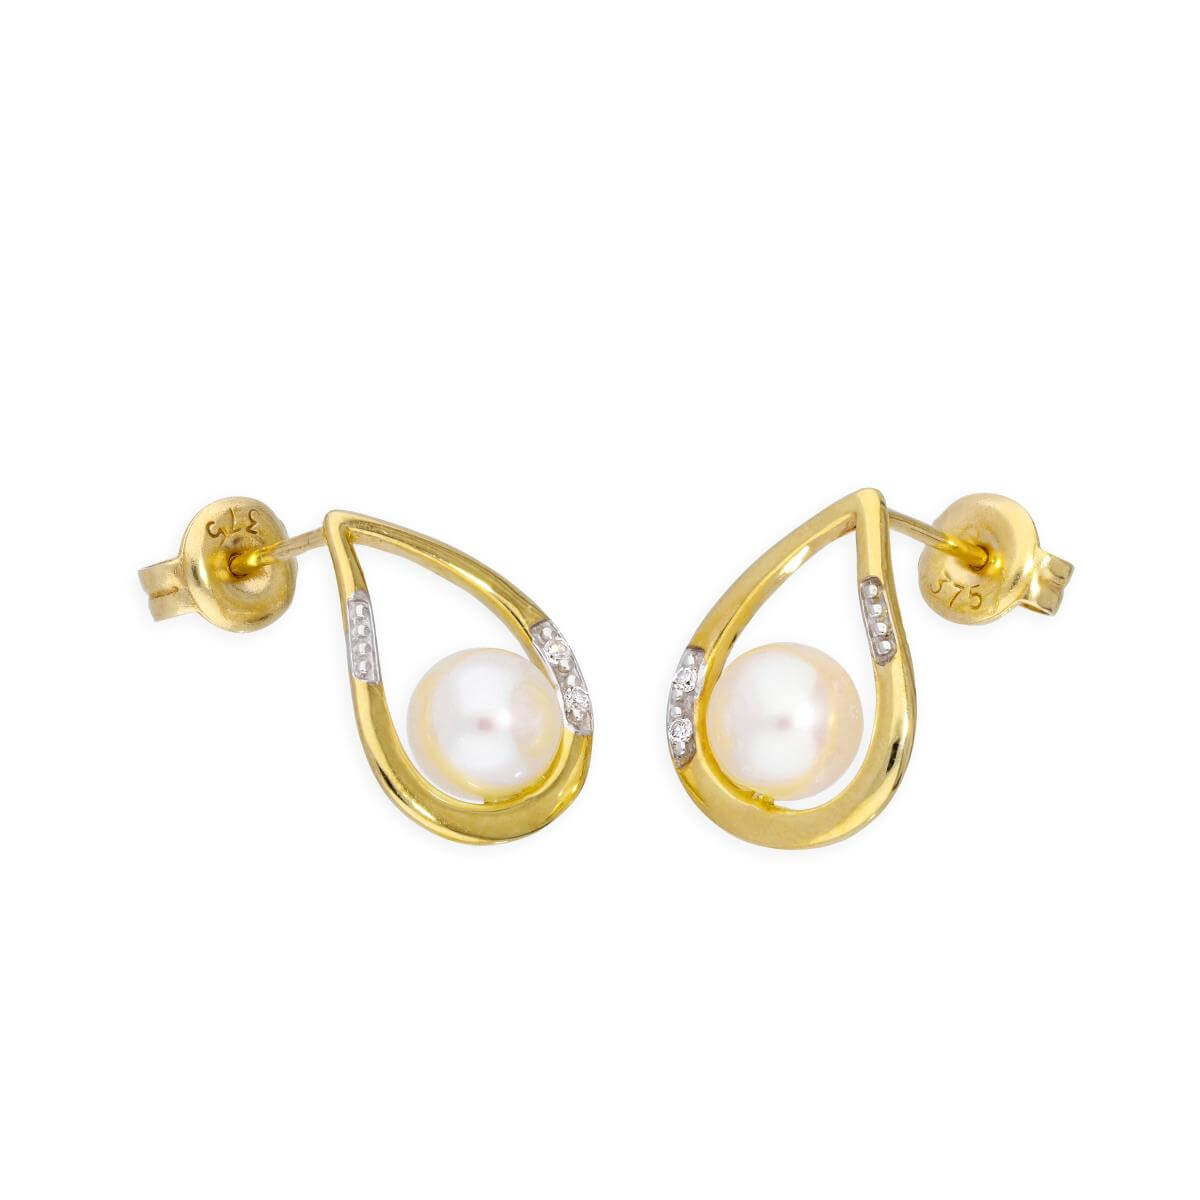 9ct Gold Open Teardrop & Freshwater Pearl Stud Earrings with Diamonds